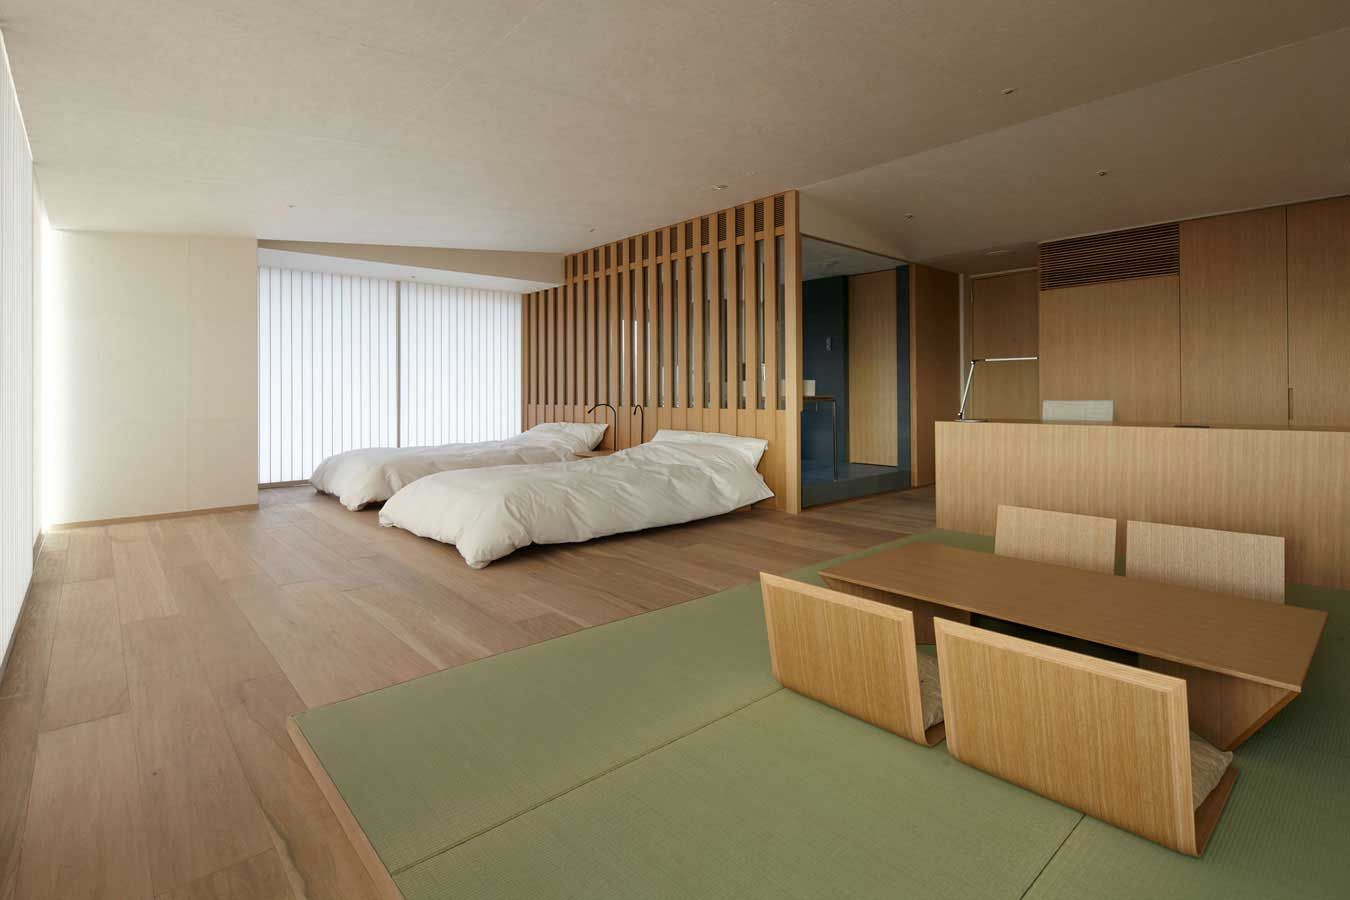 Modern Japanese Interior Design modern hotel bedroom images 67679 wallpapers | rooms | pinterest